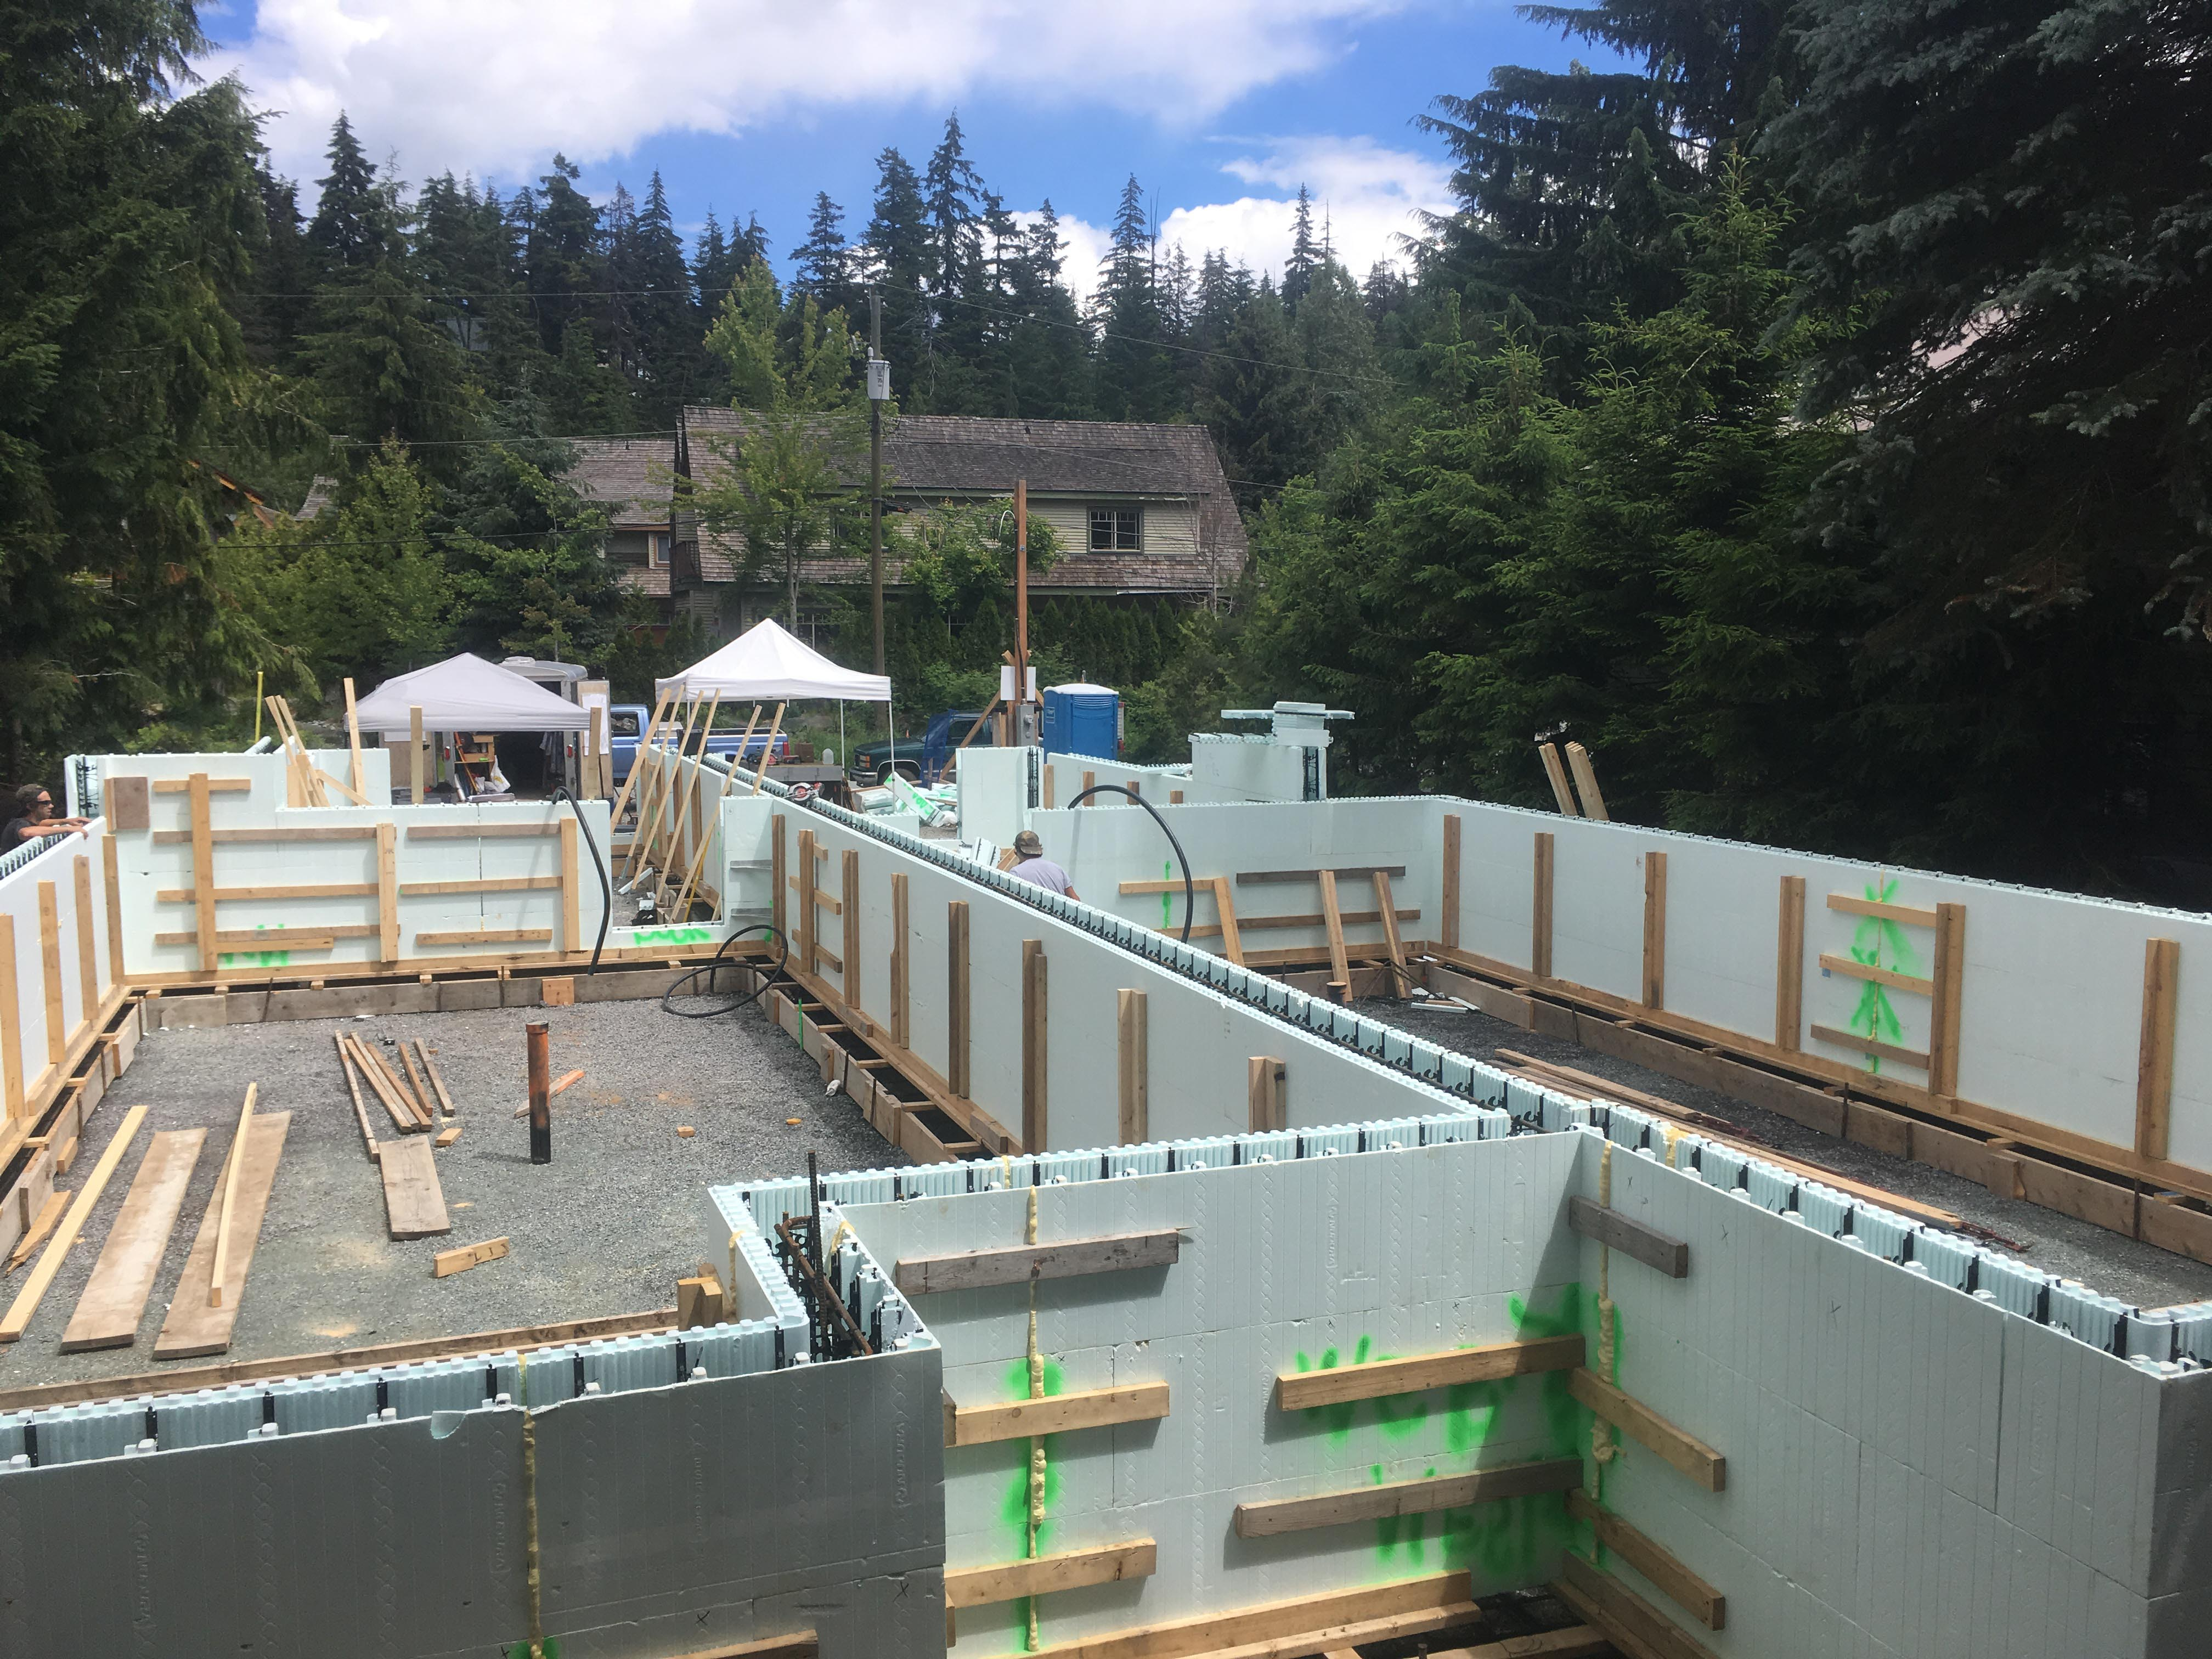 Pound 4 Pound, Framing and Forming. Large wall forming